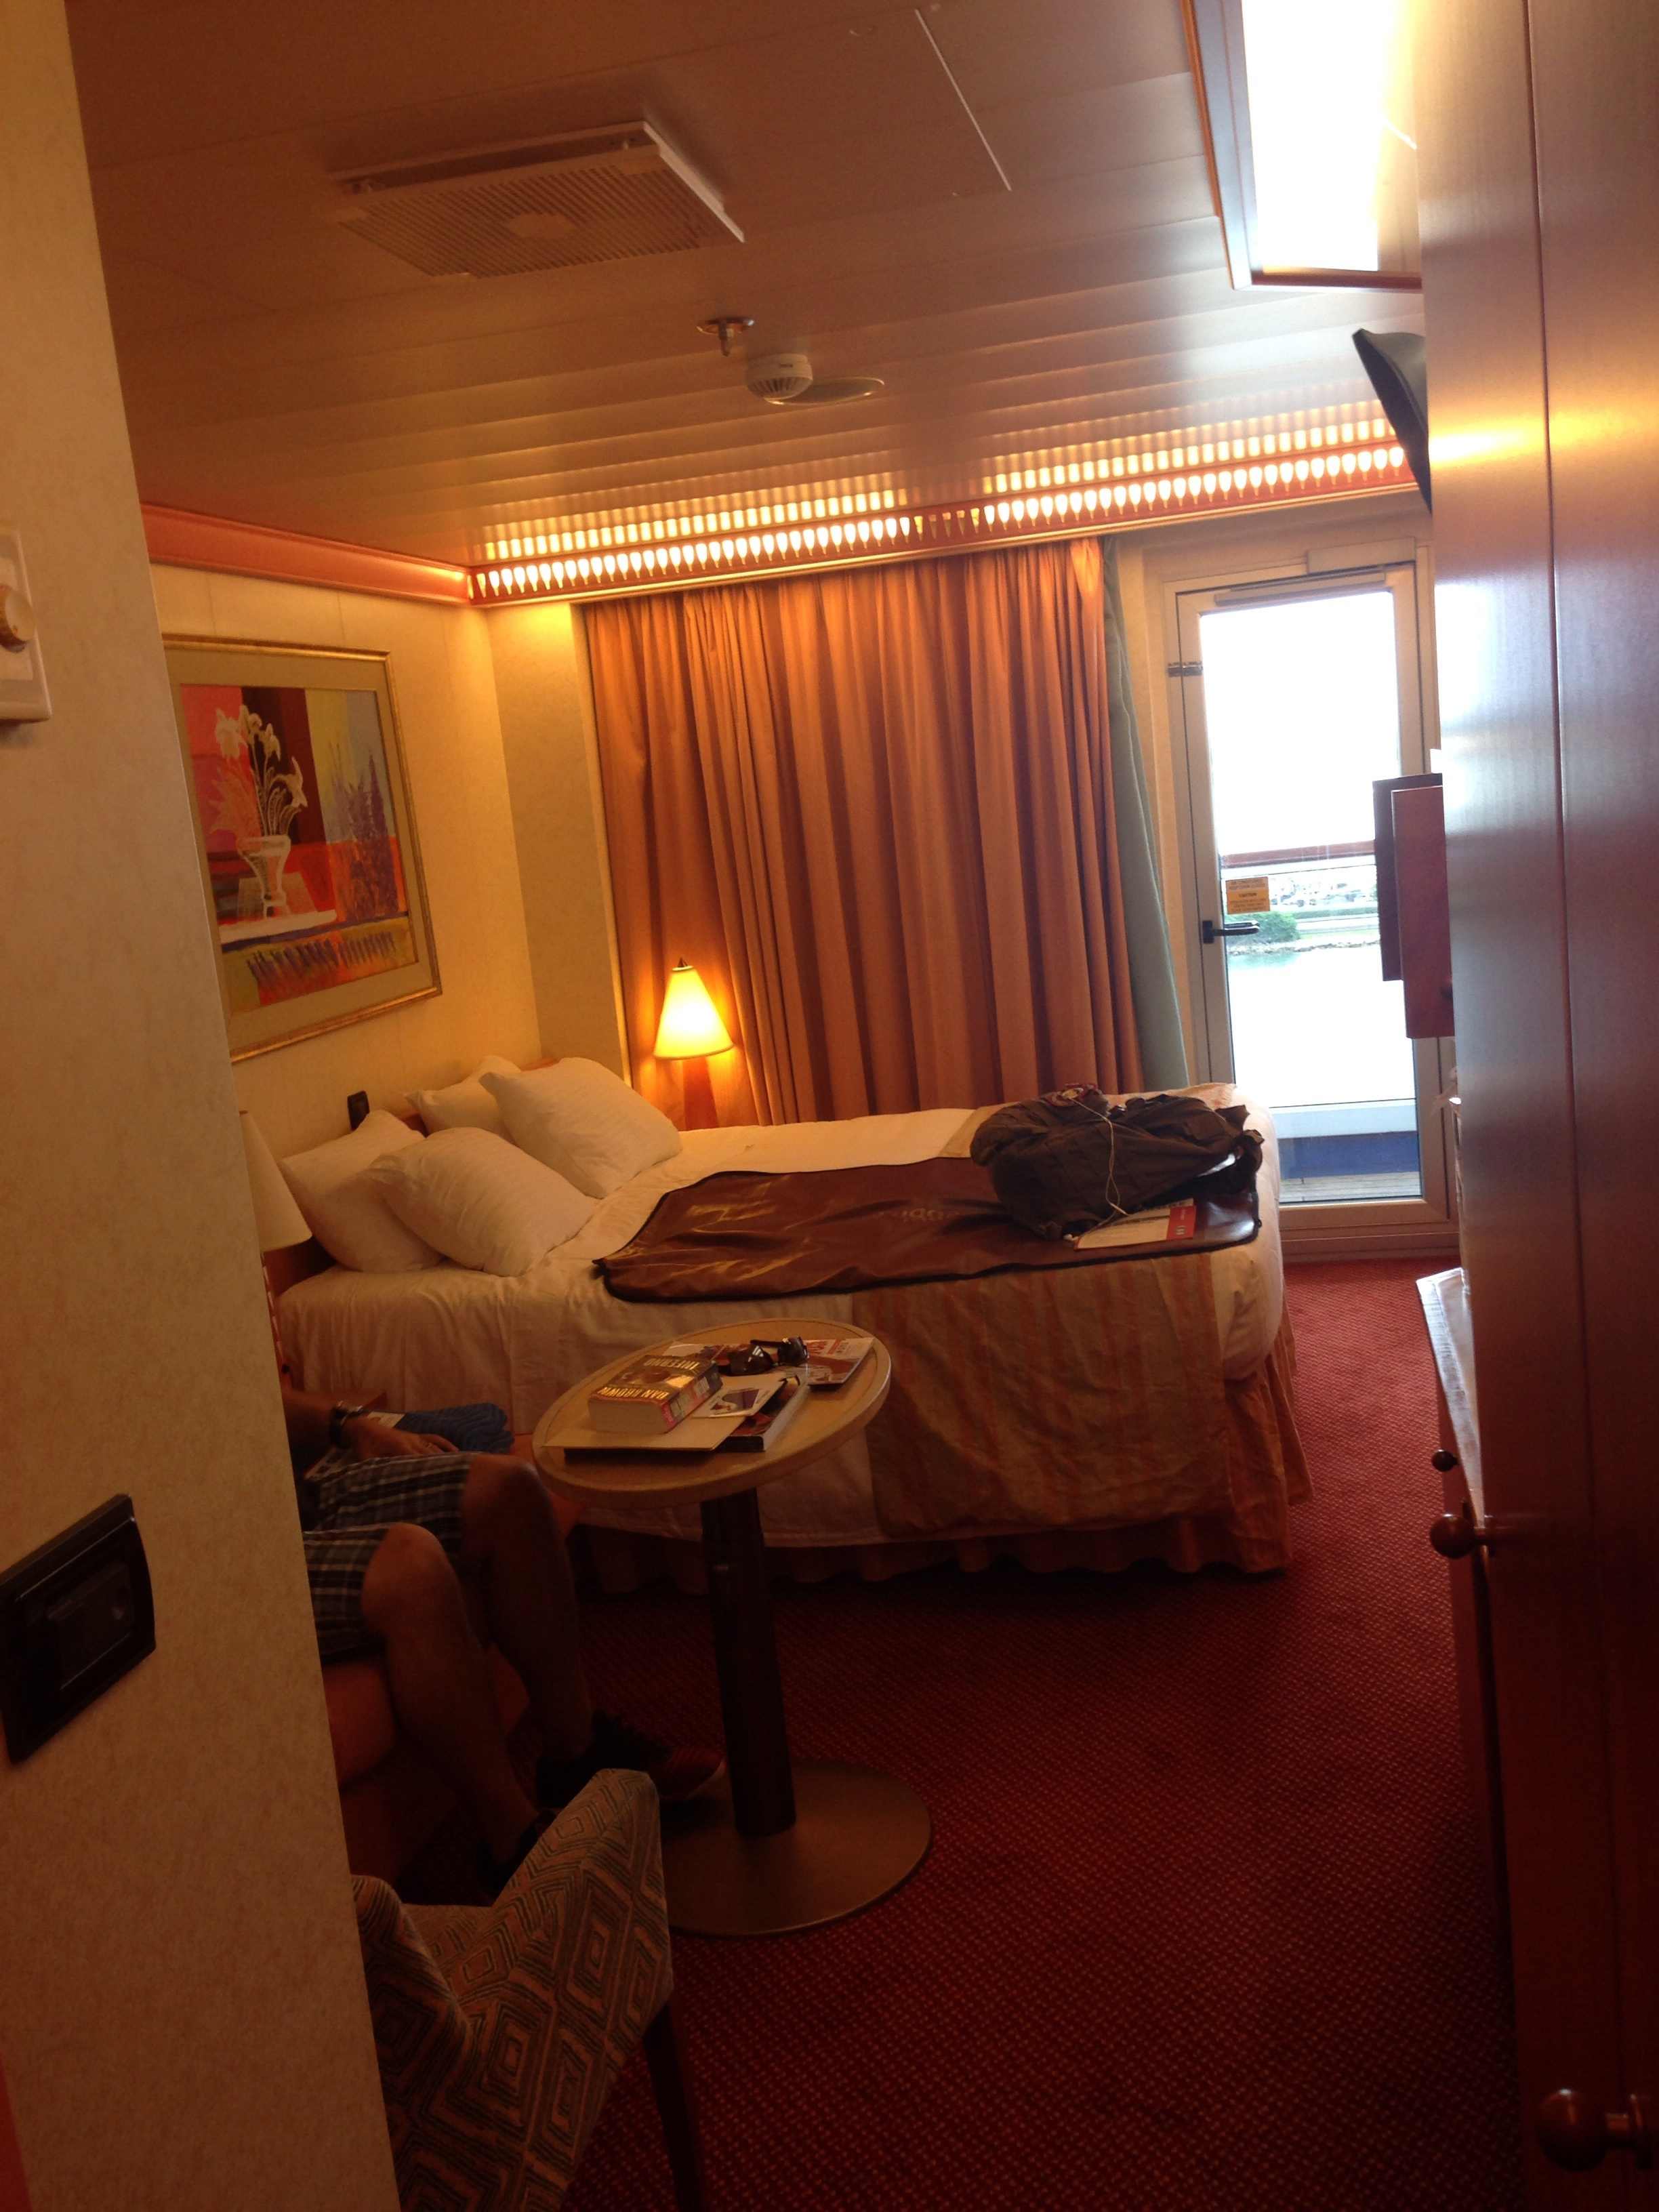 Exceeded All Expectations Carnival Glory Cruise Review